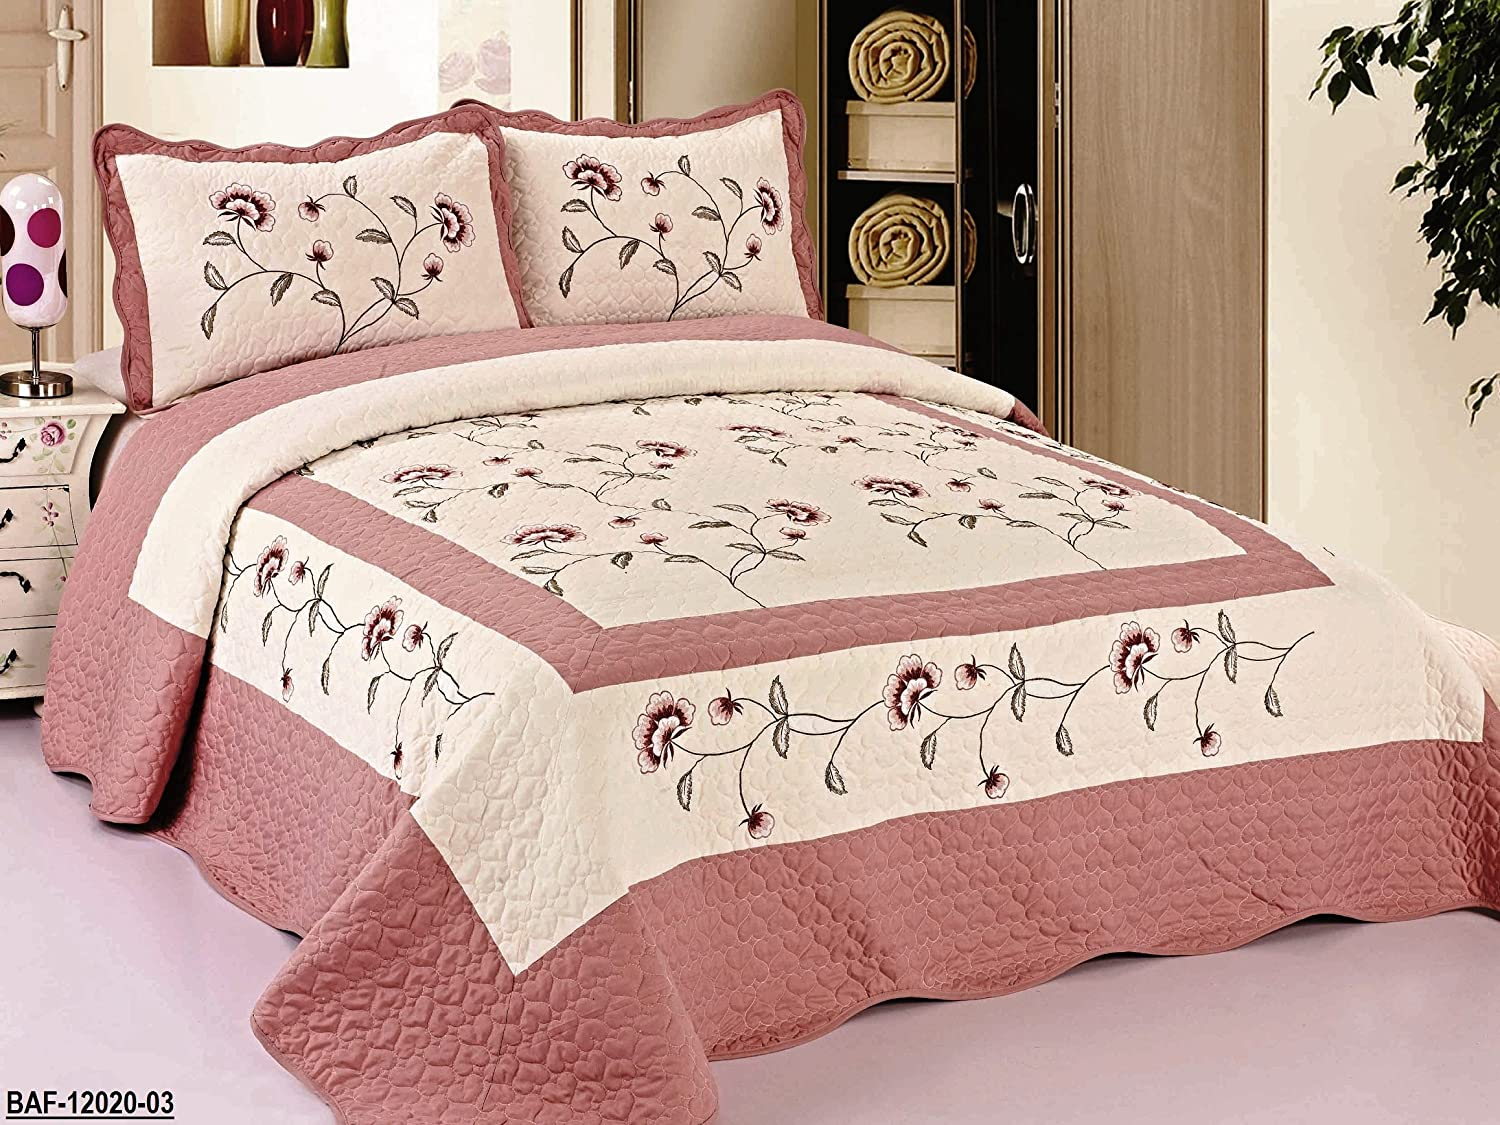 well-wreapped 3pc Beige / Rose High Quality Fully Quilted Embroidery Bedspread Bed Coverlets Cover Set , Queen King